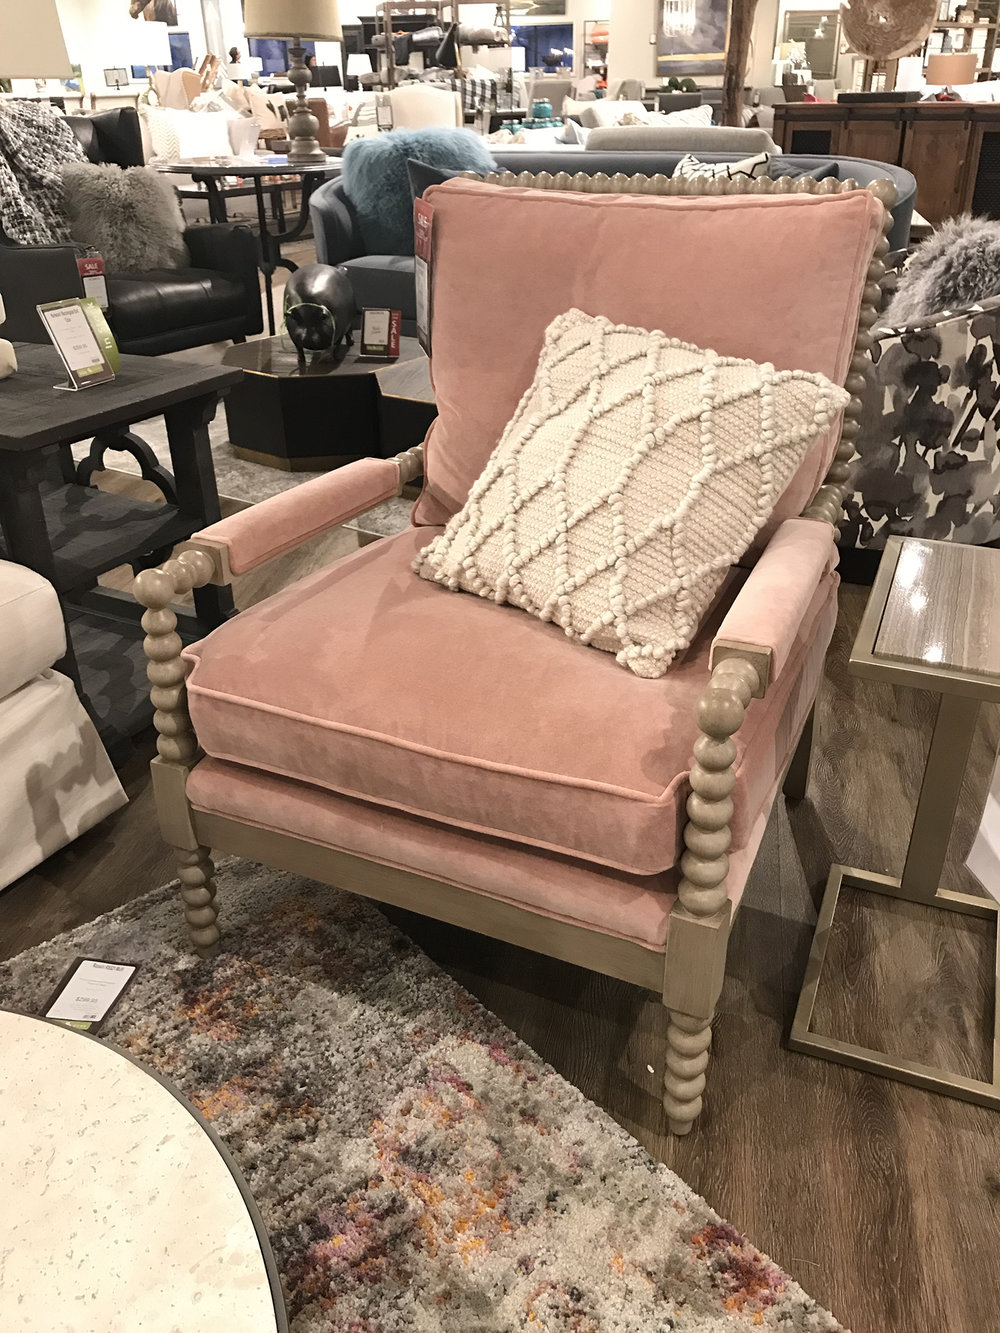 furniture-store-pink-chair.jpg